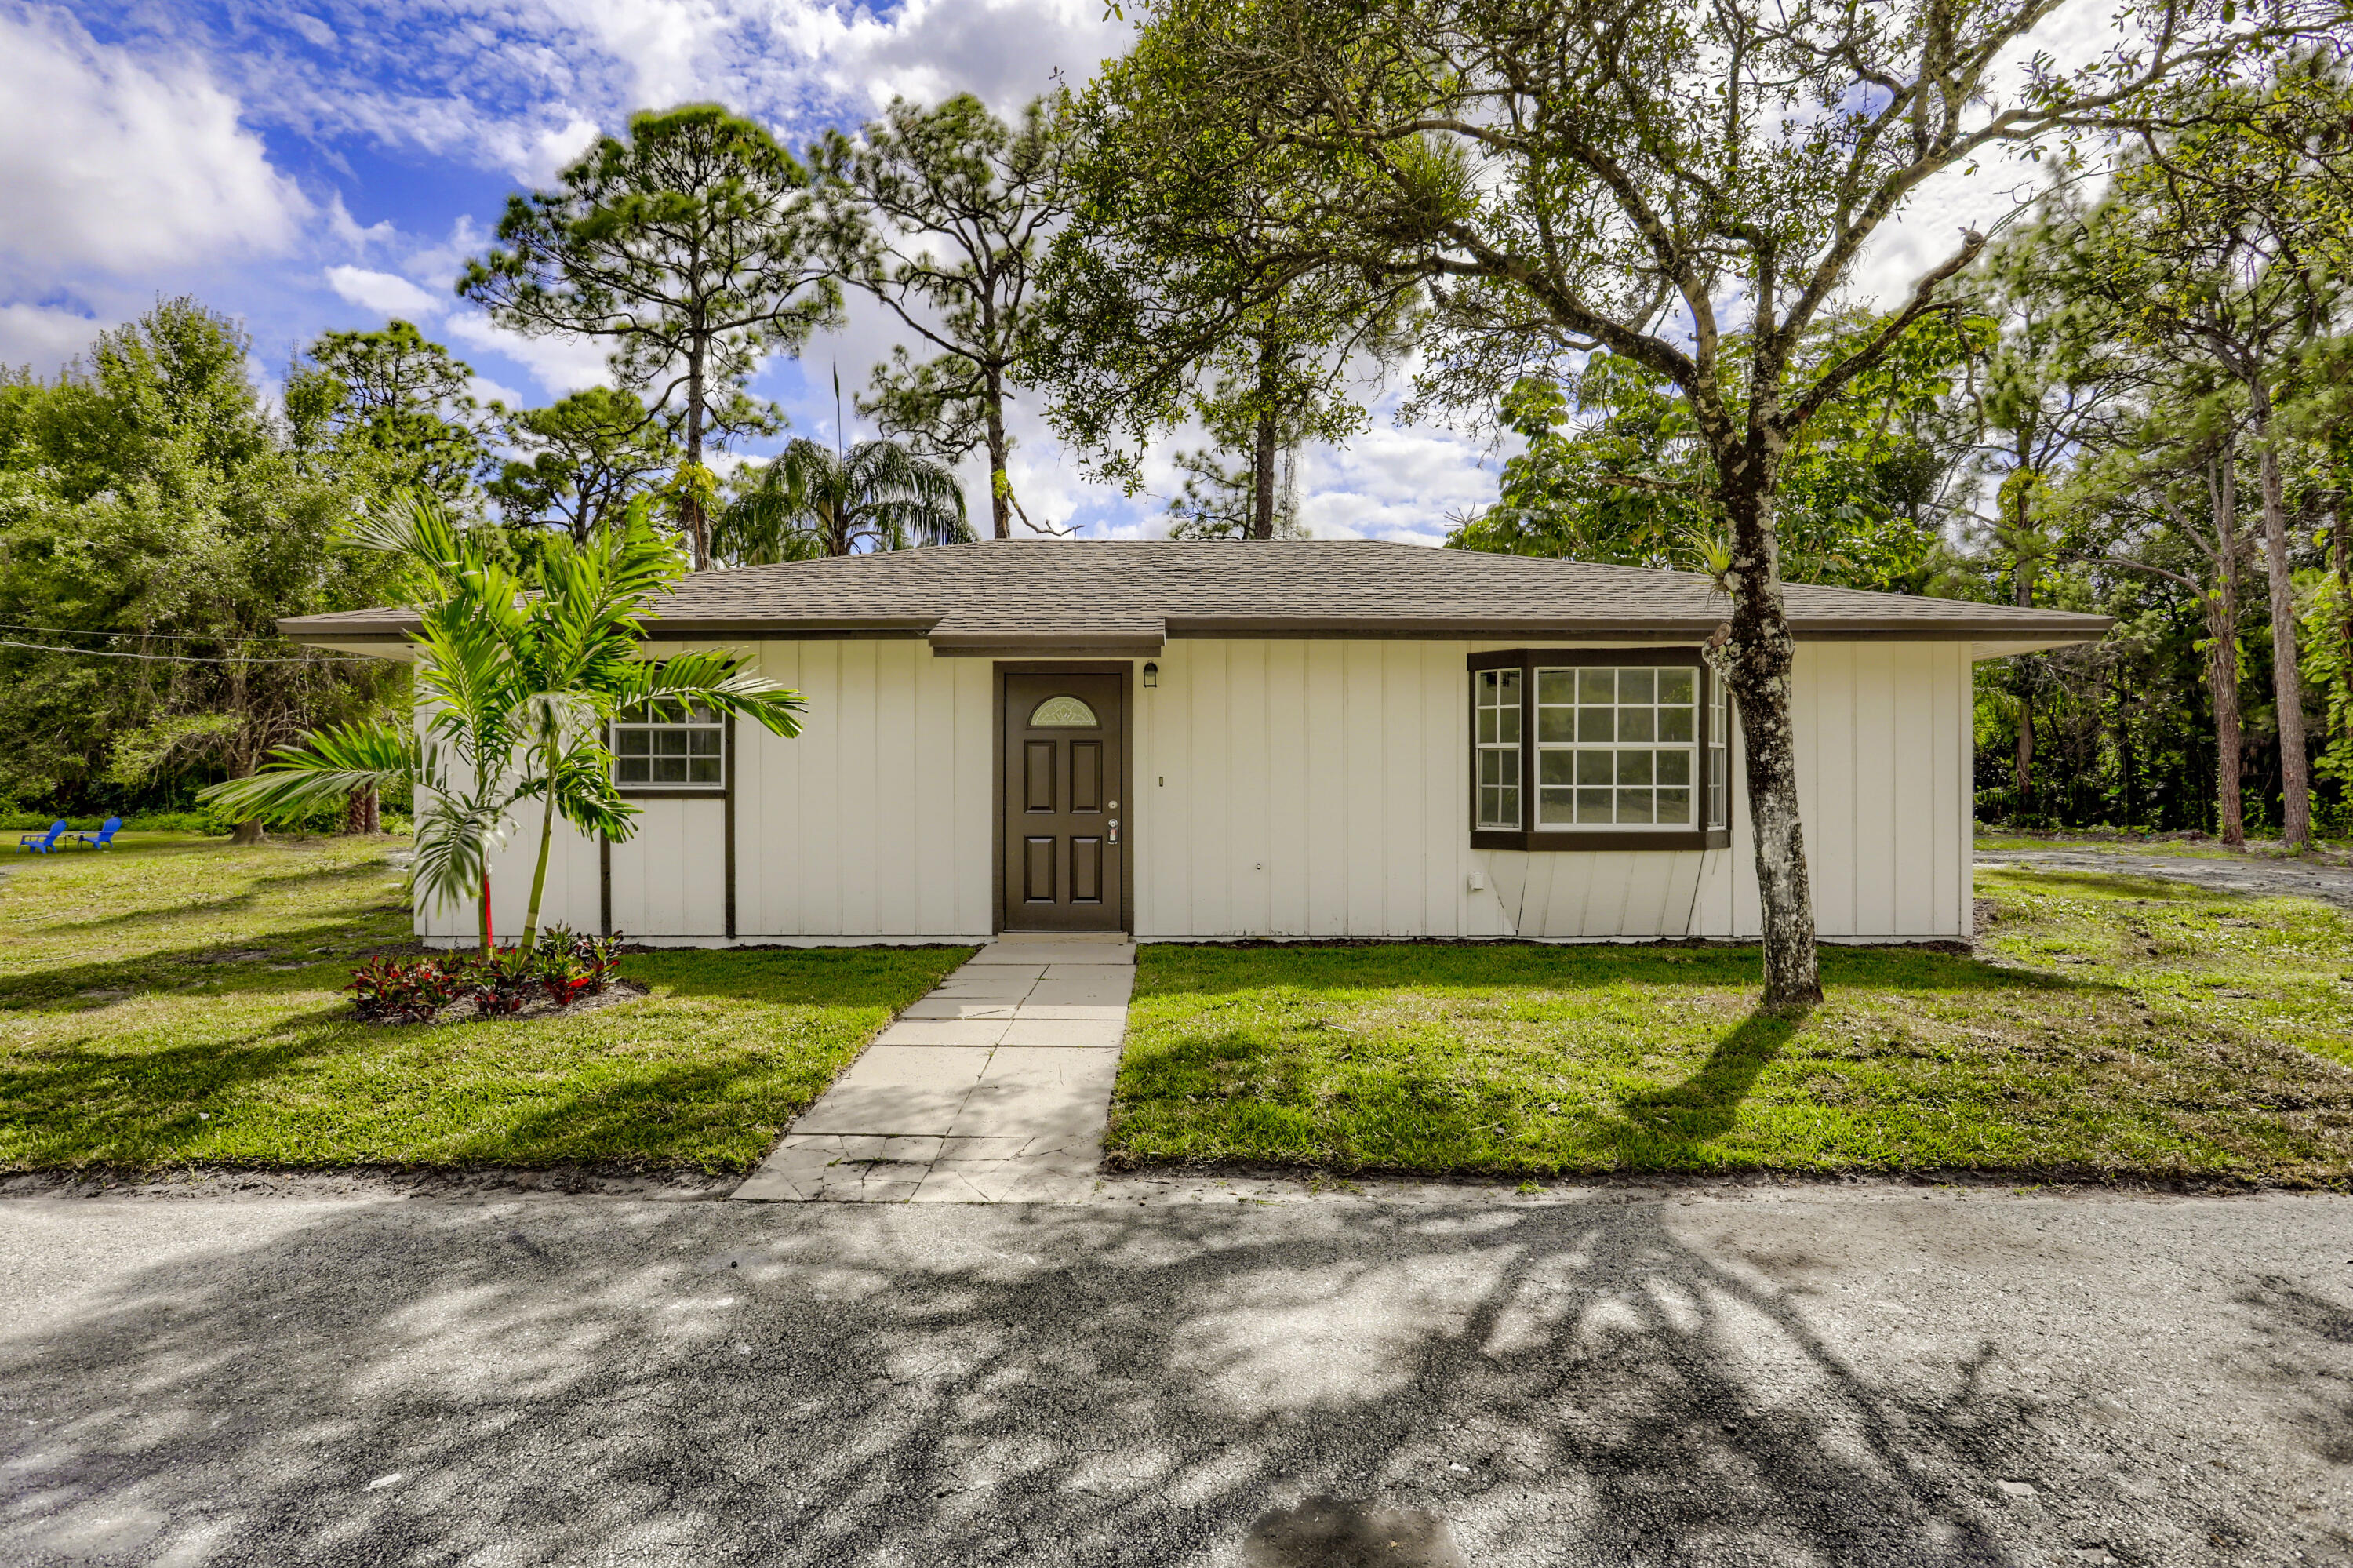 Home for sale in Unincorporated The Acreage Florida